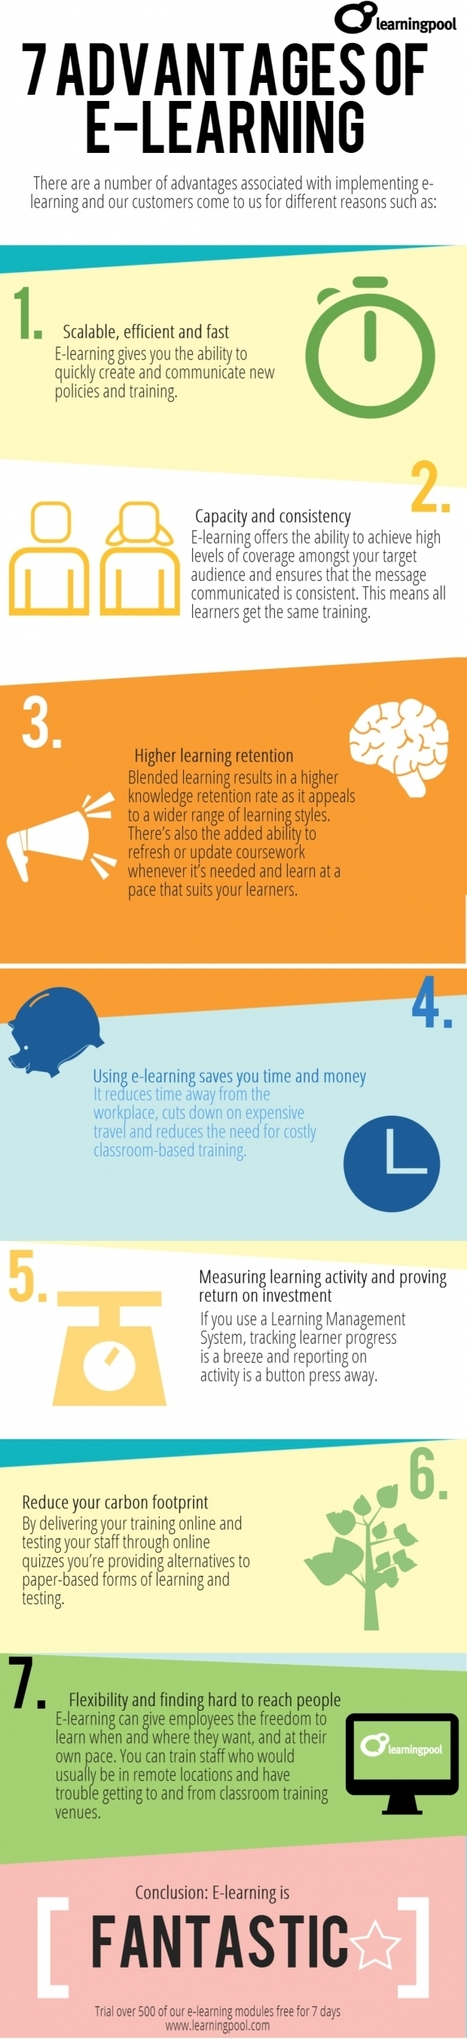 The 7 Biggest Advantages Of eLearning - Edudemic | Social Learning - MOOC - OER | Scoop.it